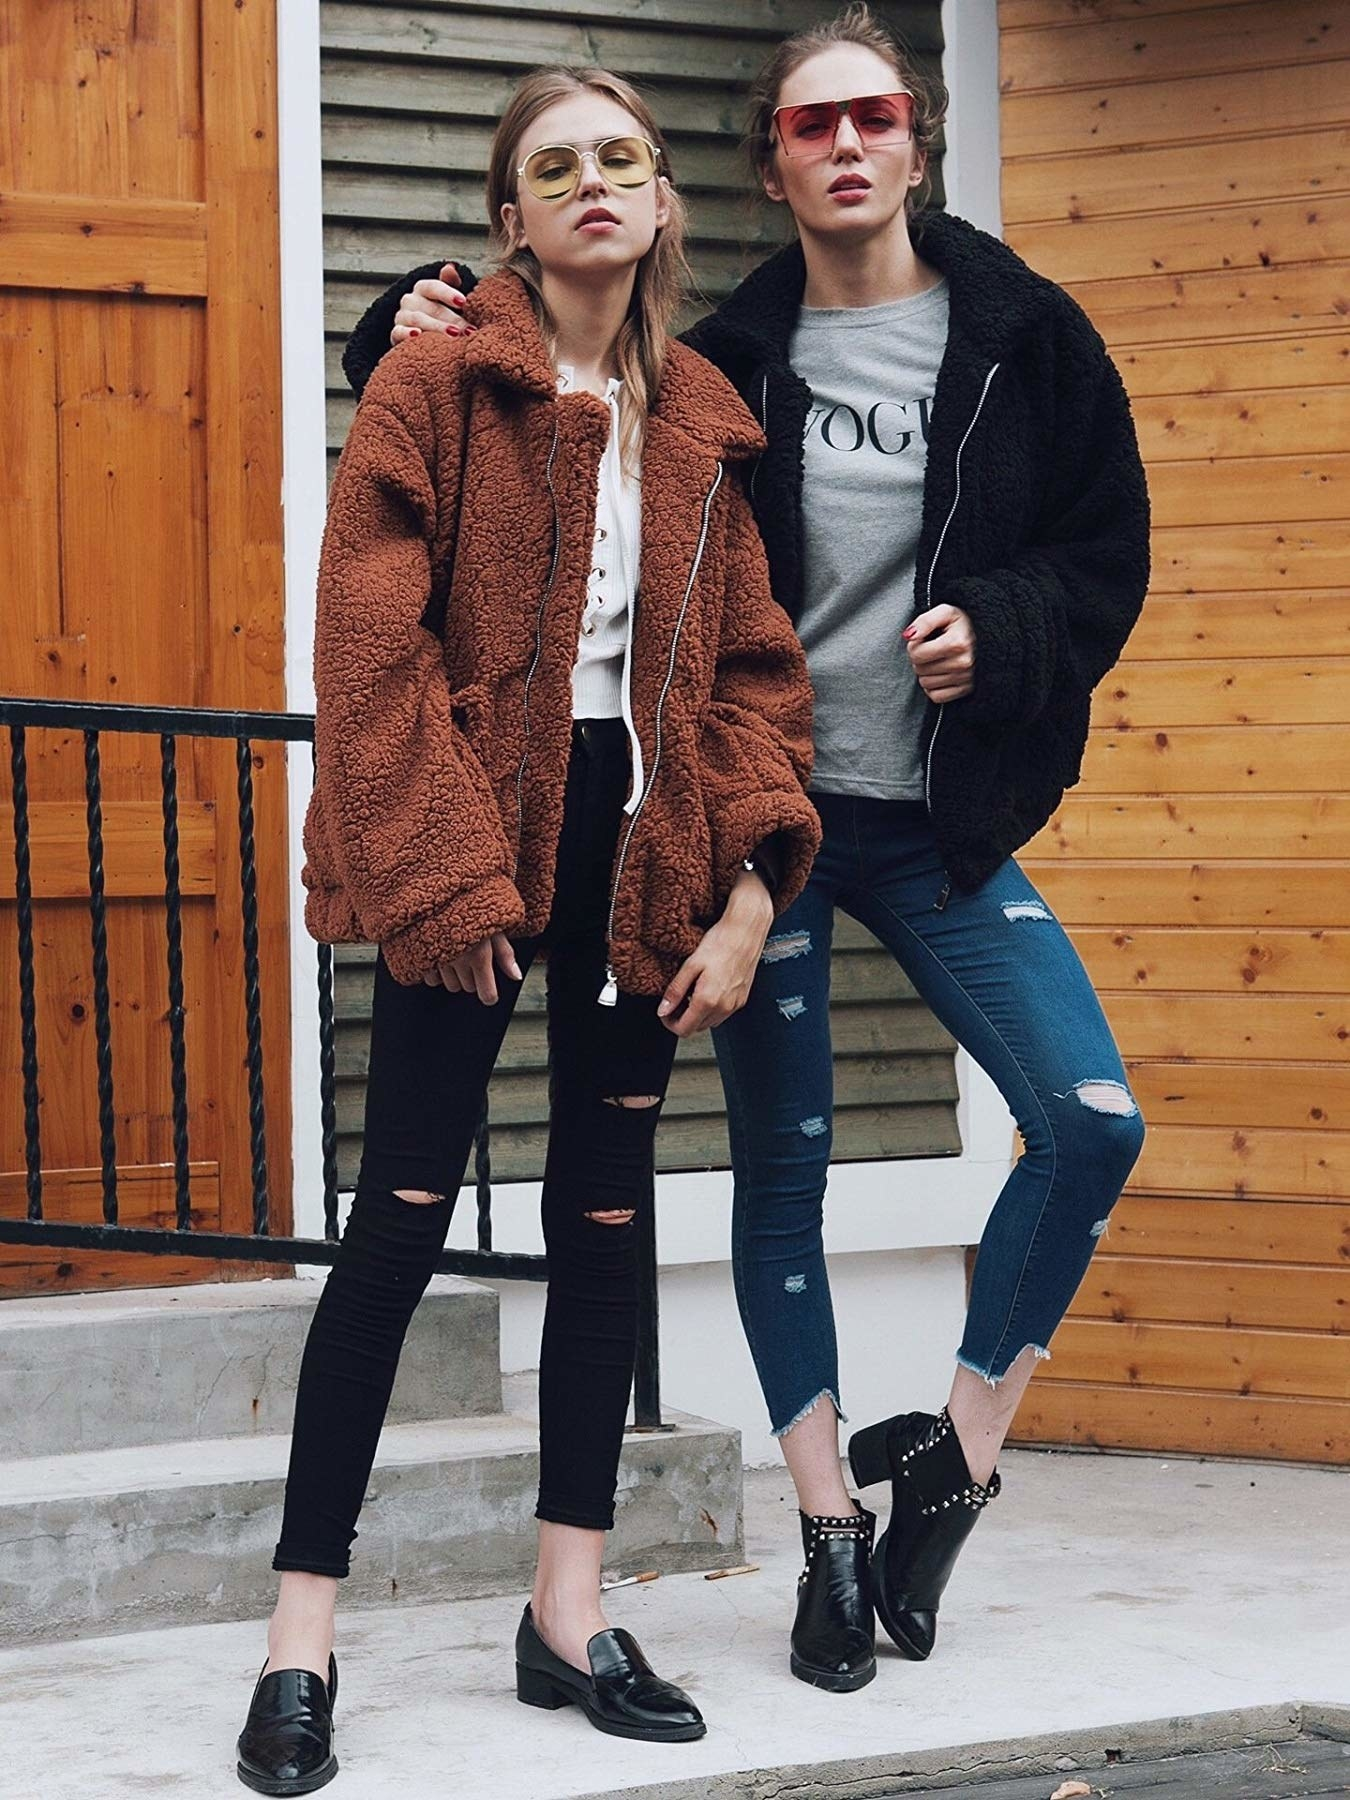 Two models wearing the coat in brown and black